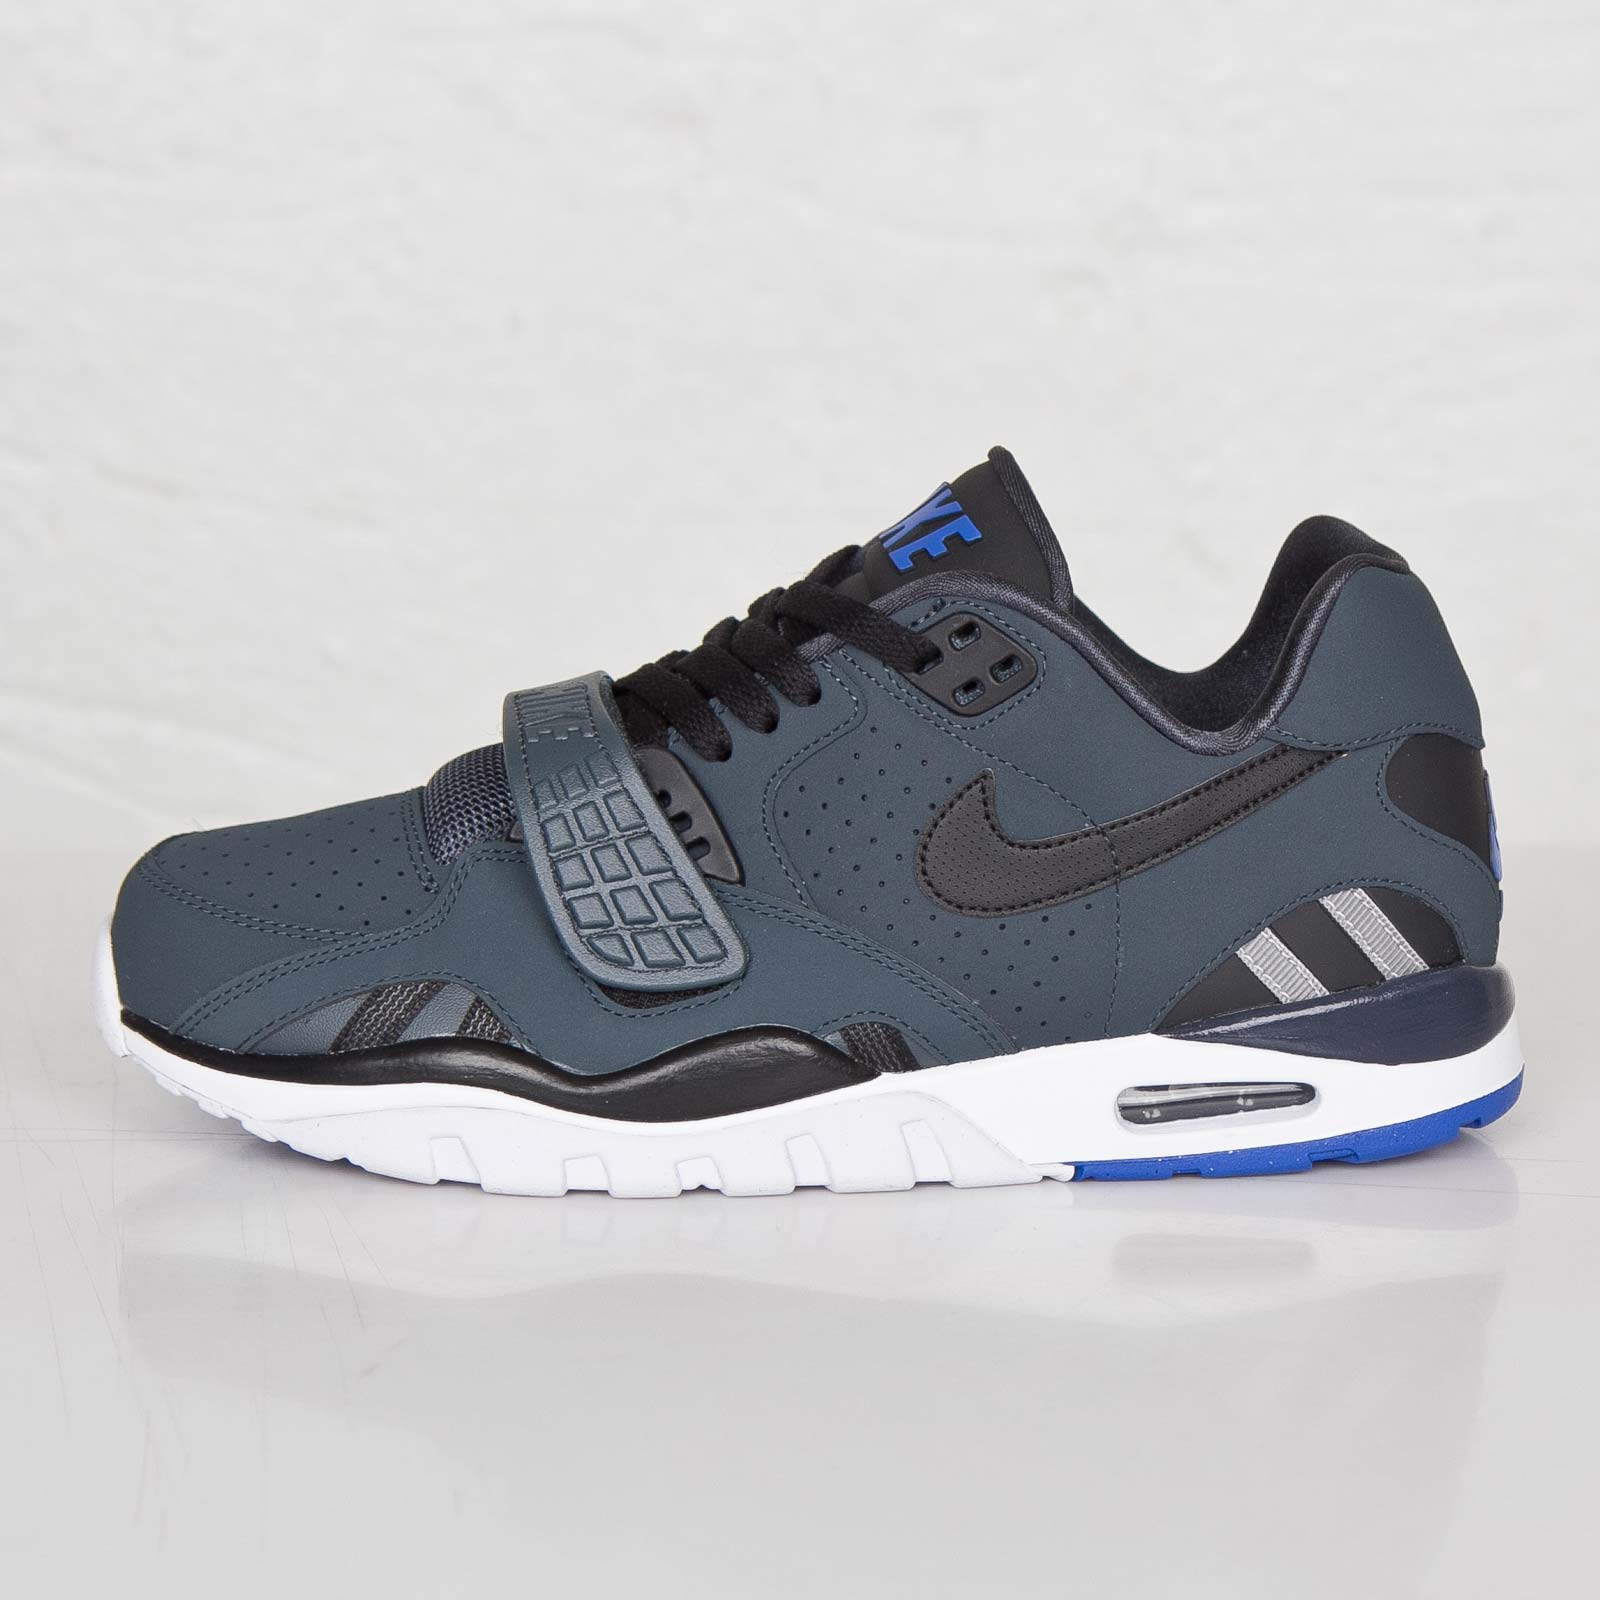 new styles 6f32c 9f3a3 Nike Air Trainer SC II Low - 7. Close